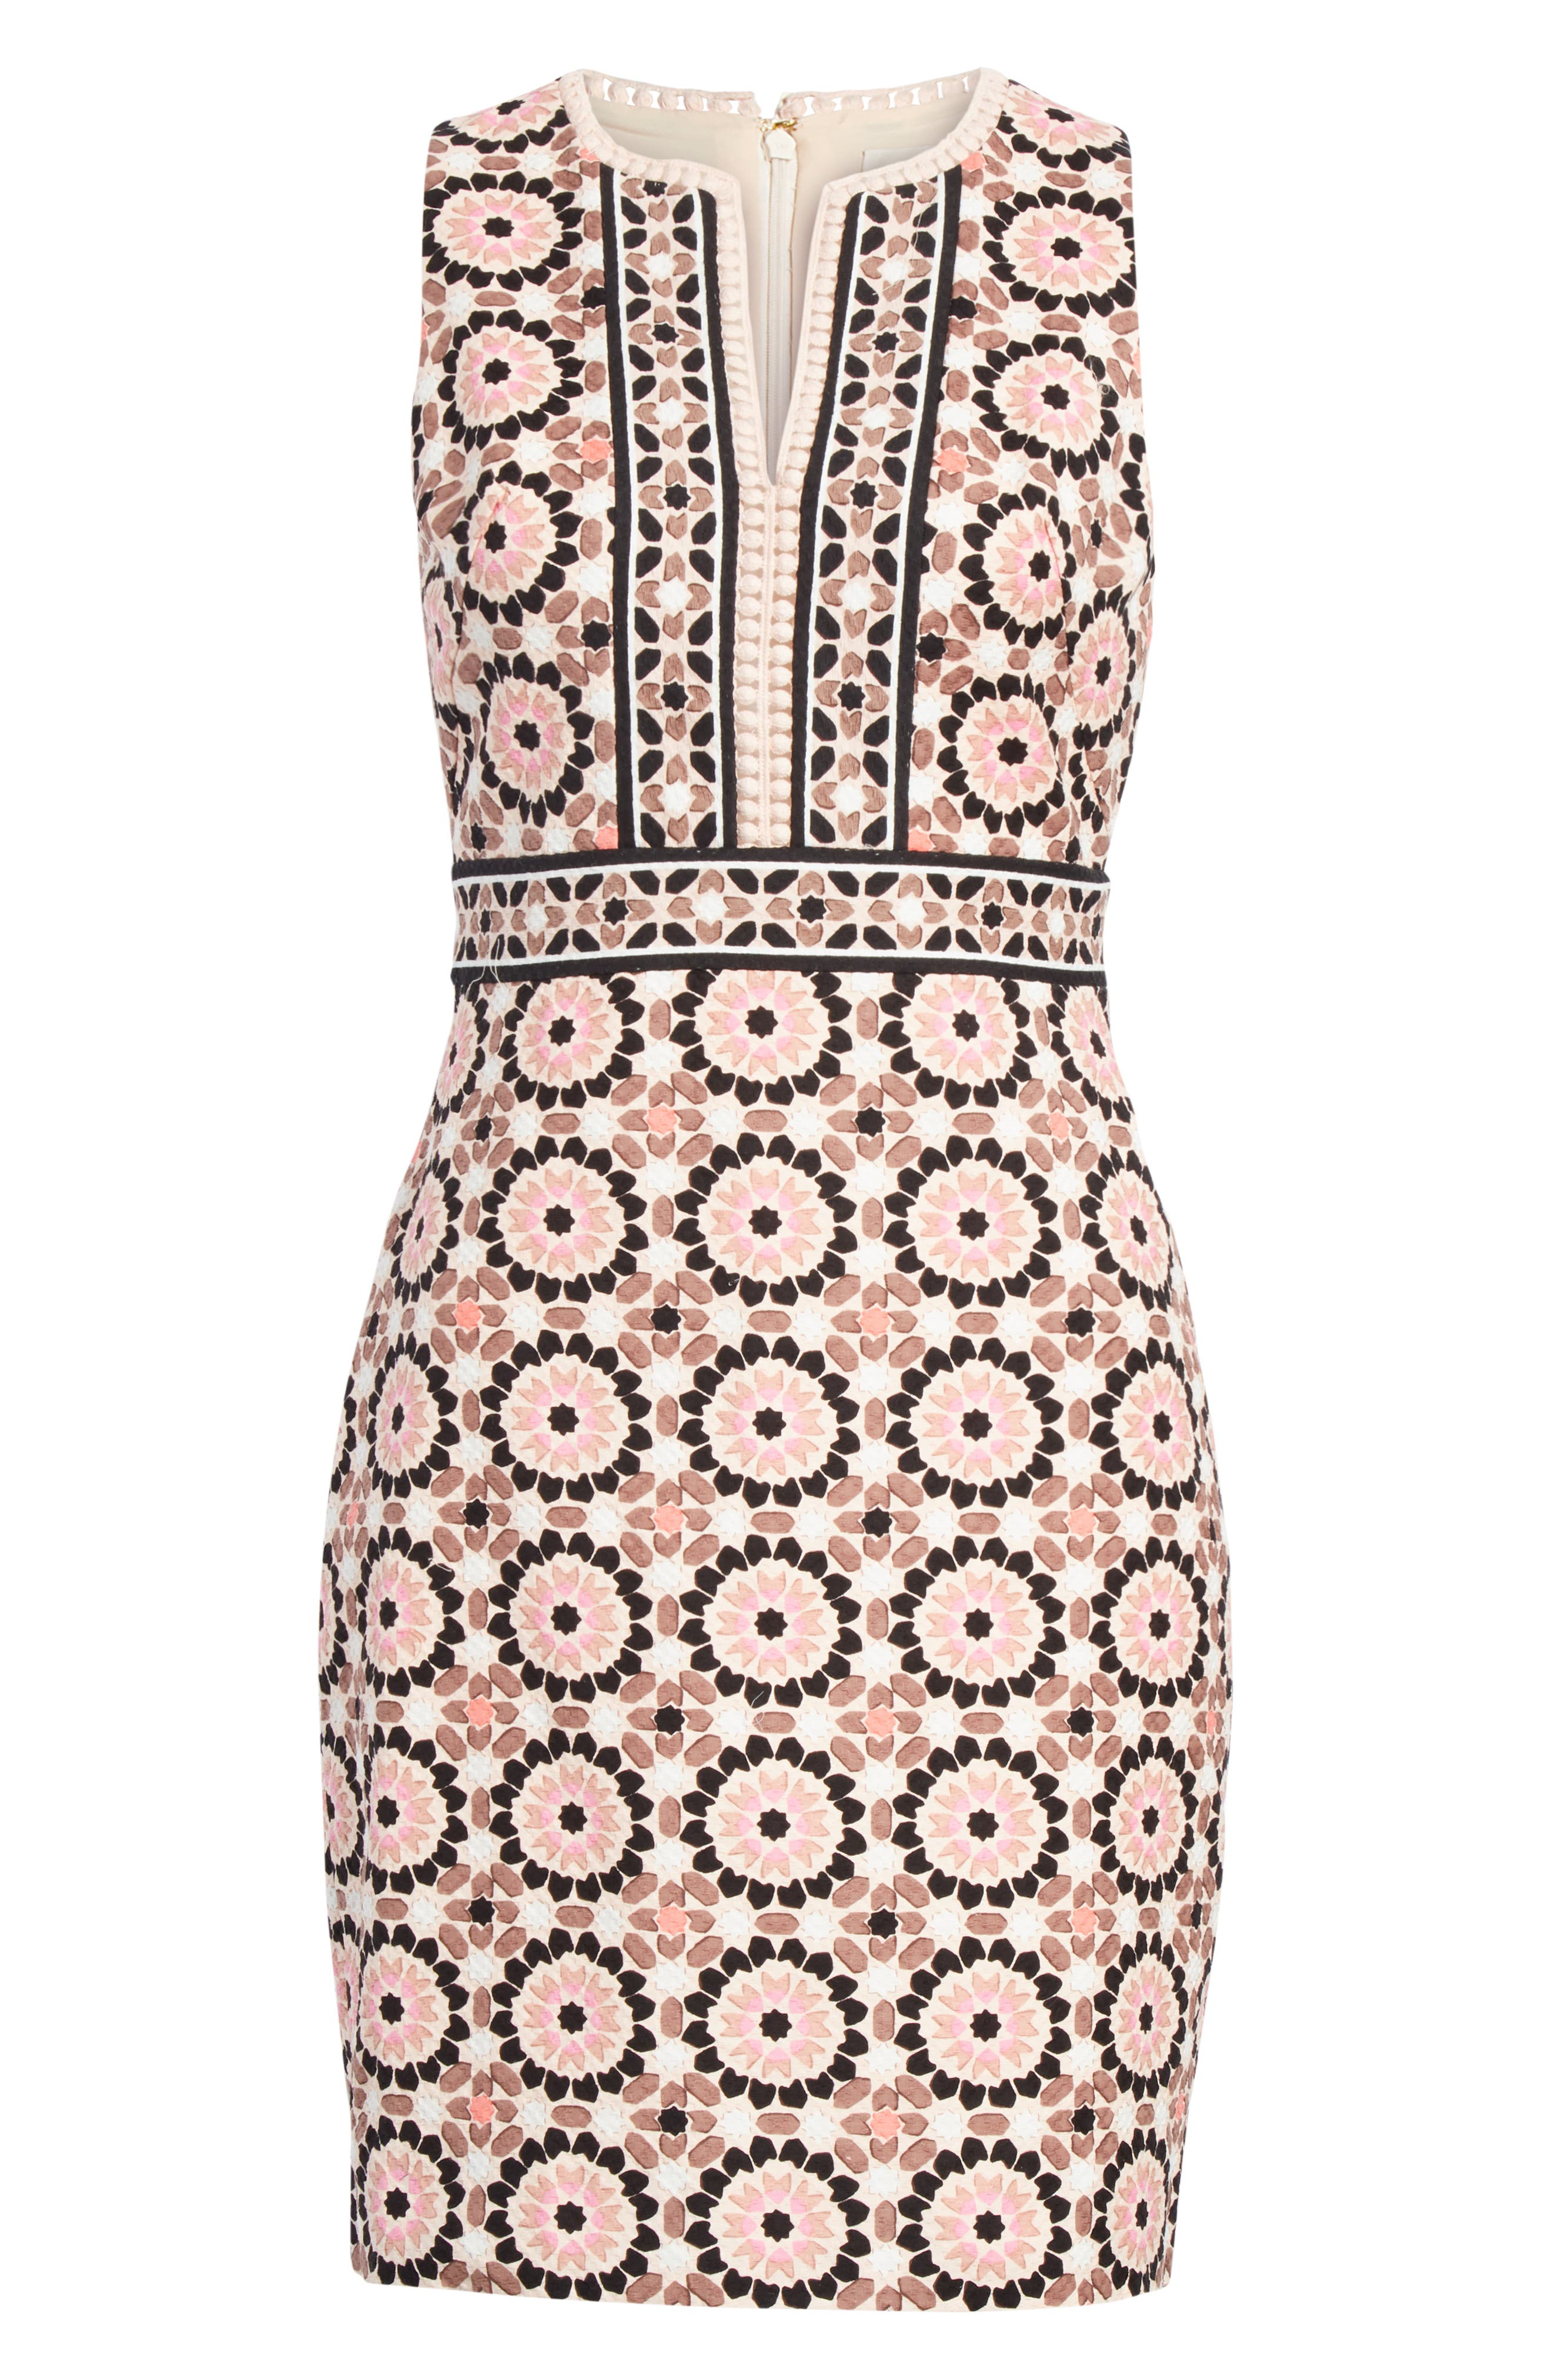 floral mosaic jacquard sheath dress,                             Alternate thumbnail 6, color,                             Pearl Pink Multi